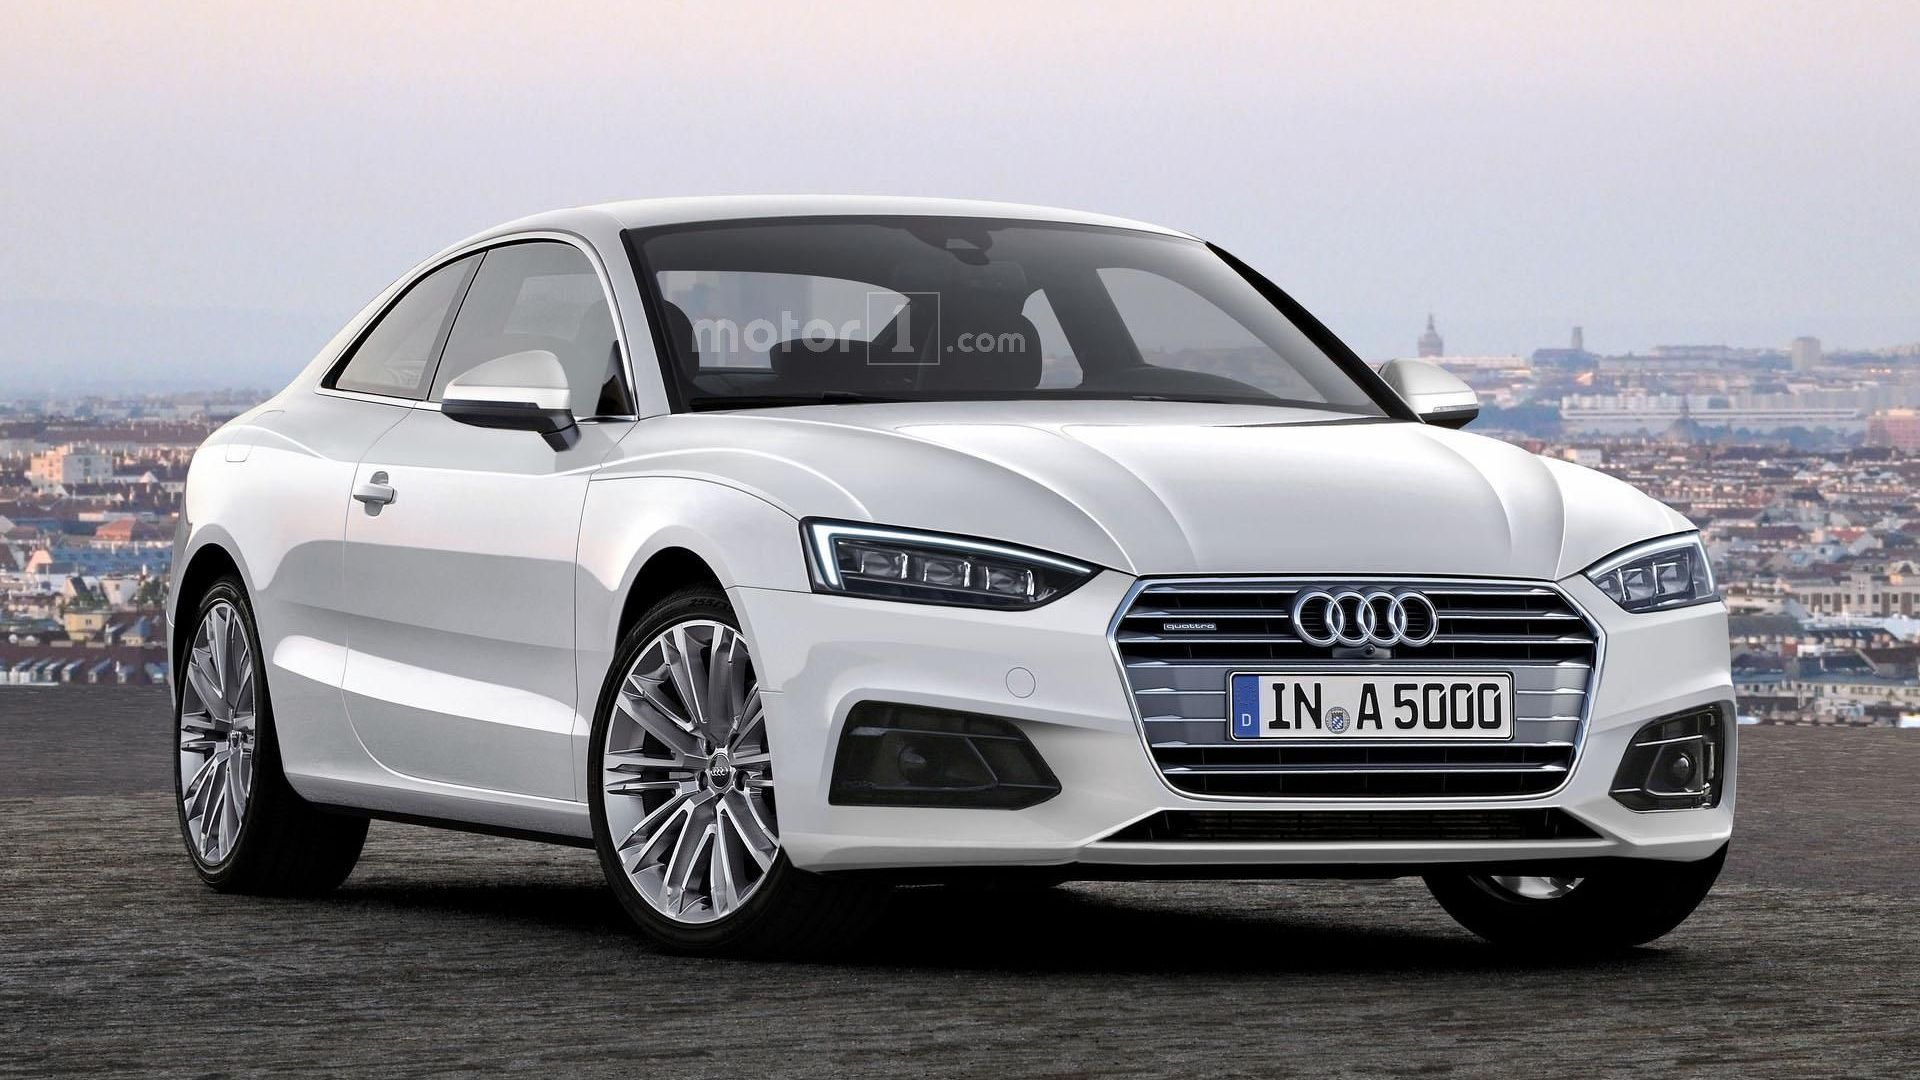 2017 Audi A5 Coupe Looks Rather Stylish In New Rendering Touareg Fuse Box Diagram